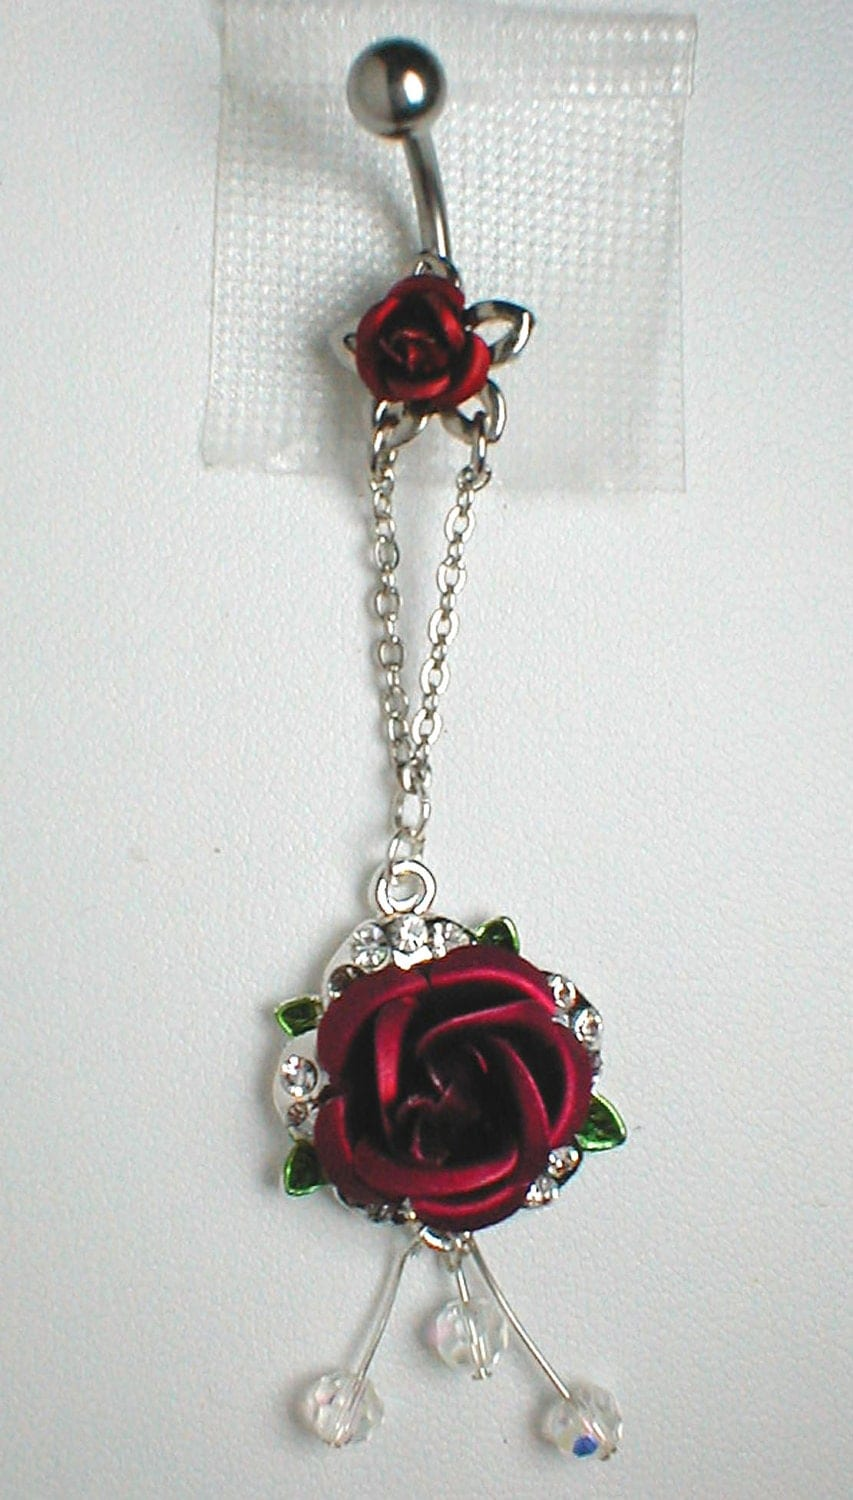 Unique Belly Ring Red Rose Reserved For Bas by pondgazer2004